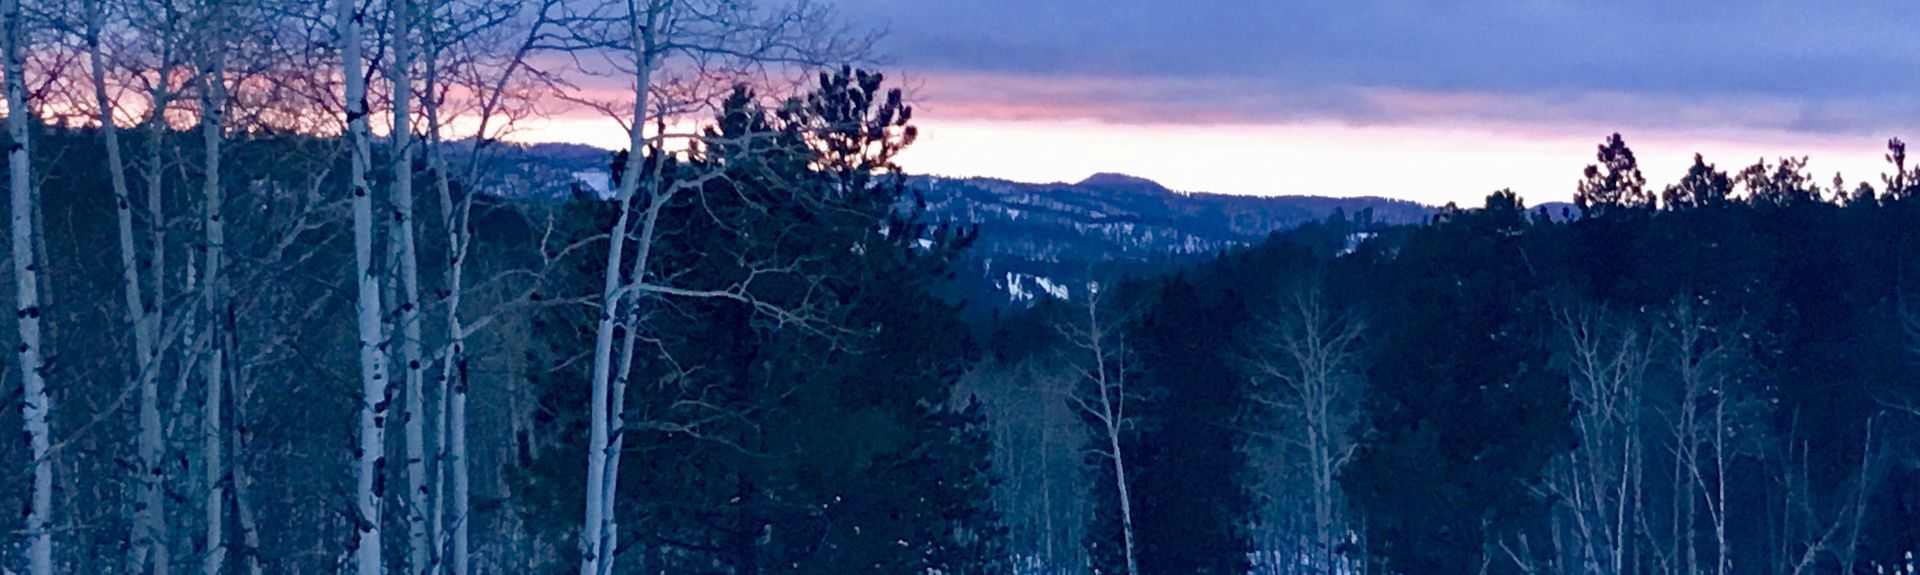 Mount Moriah Cemetery, Deadwood, SD, United States